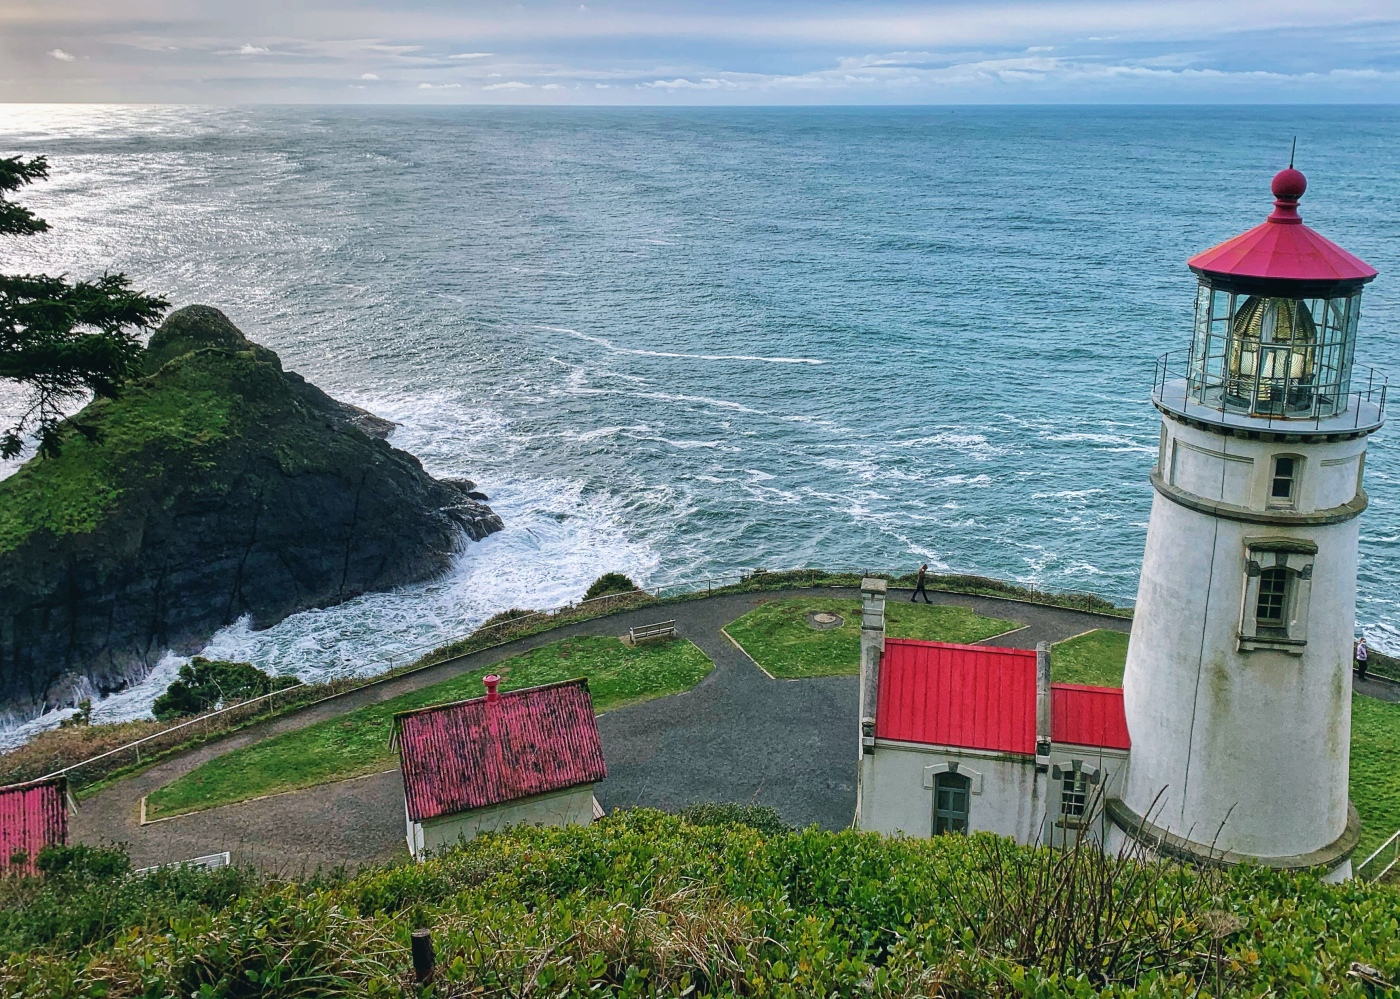 lighthouse on a cliff above the ocean